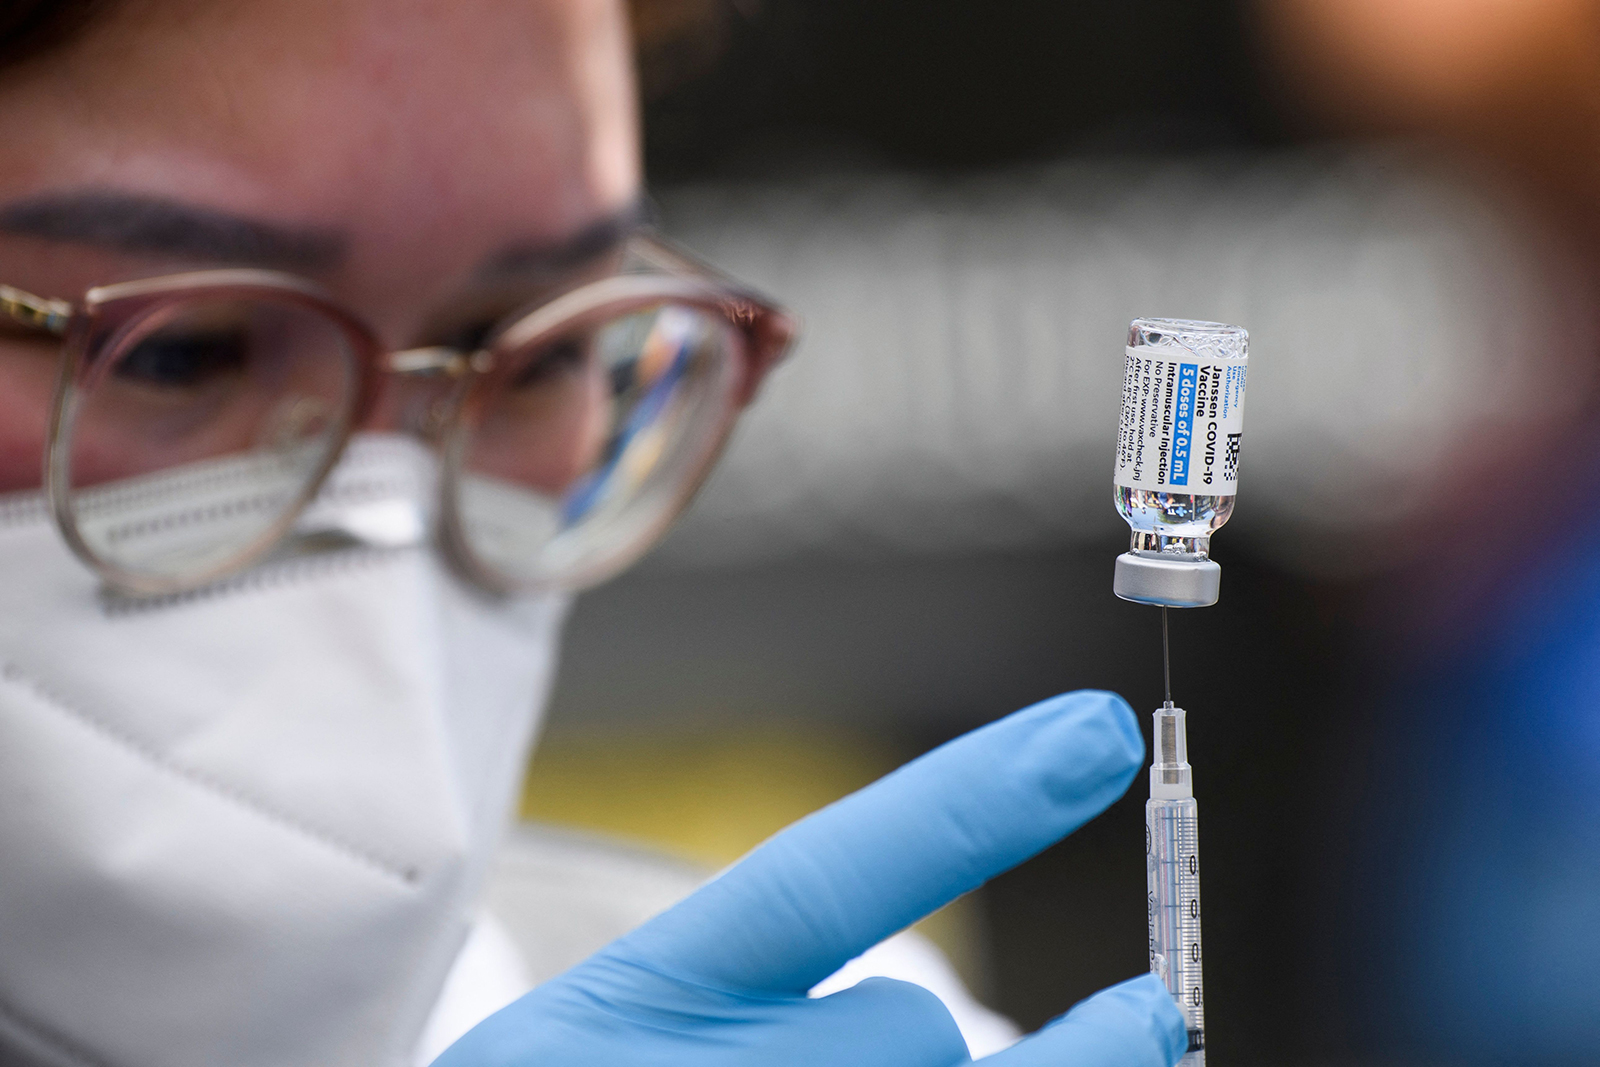 A dose of the Johnson & Johnson Covid-19 vaccine is prepared at a mobile vaccination clinic in Los Angeles on August 7.